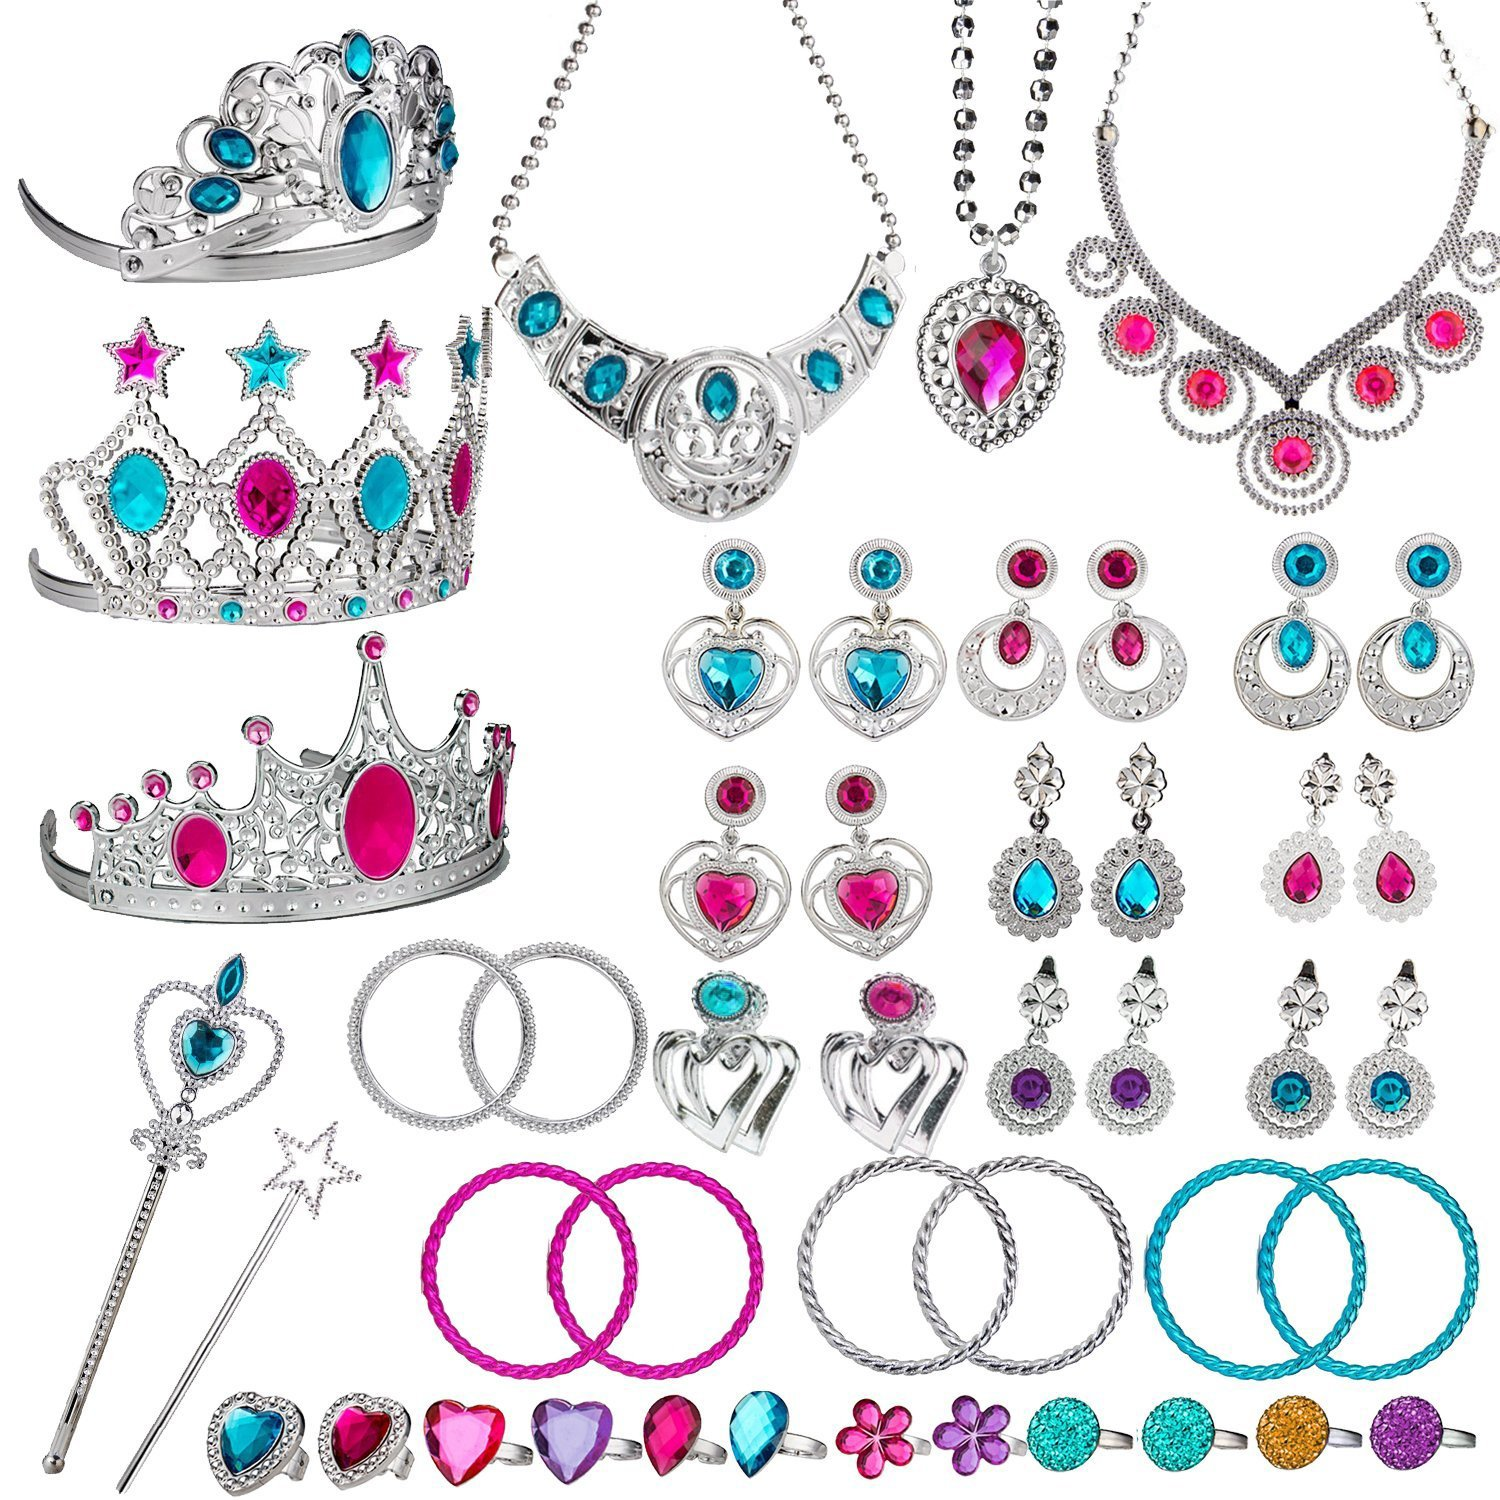 WATINC 46Pack Princess Pretend Jewelry Toy,Girl's Jewelry Dress Up Play Set,Included Crowns, Necklaces,Wands, Rings,Earrings and Bracelets,46 Pack Girl's Jewelry Dress Up Play Set